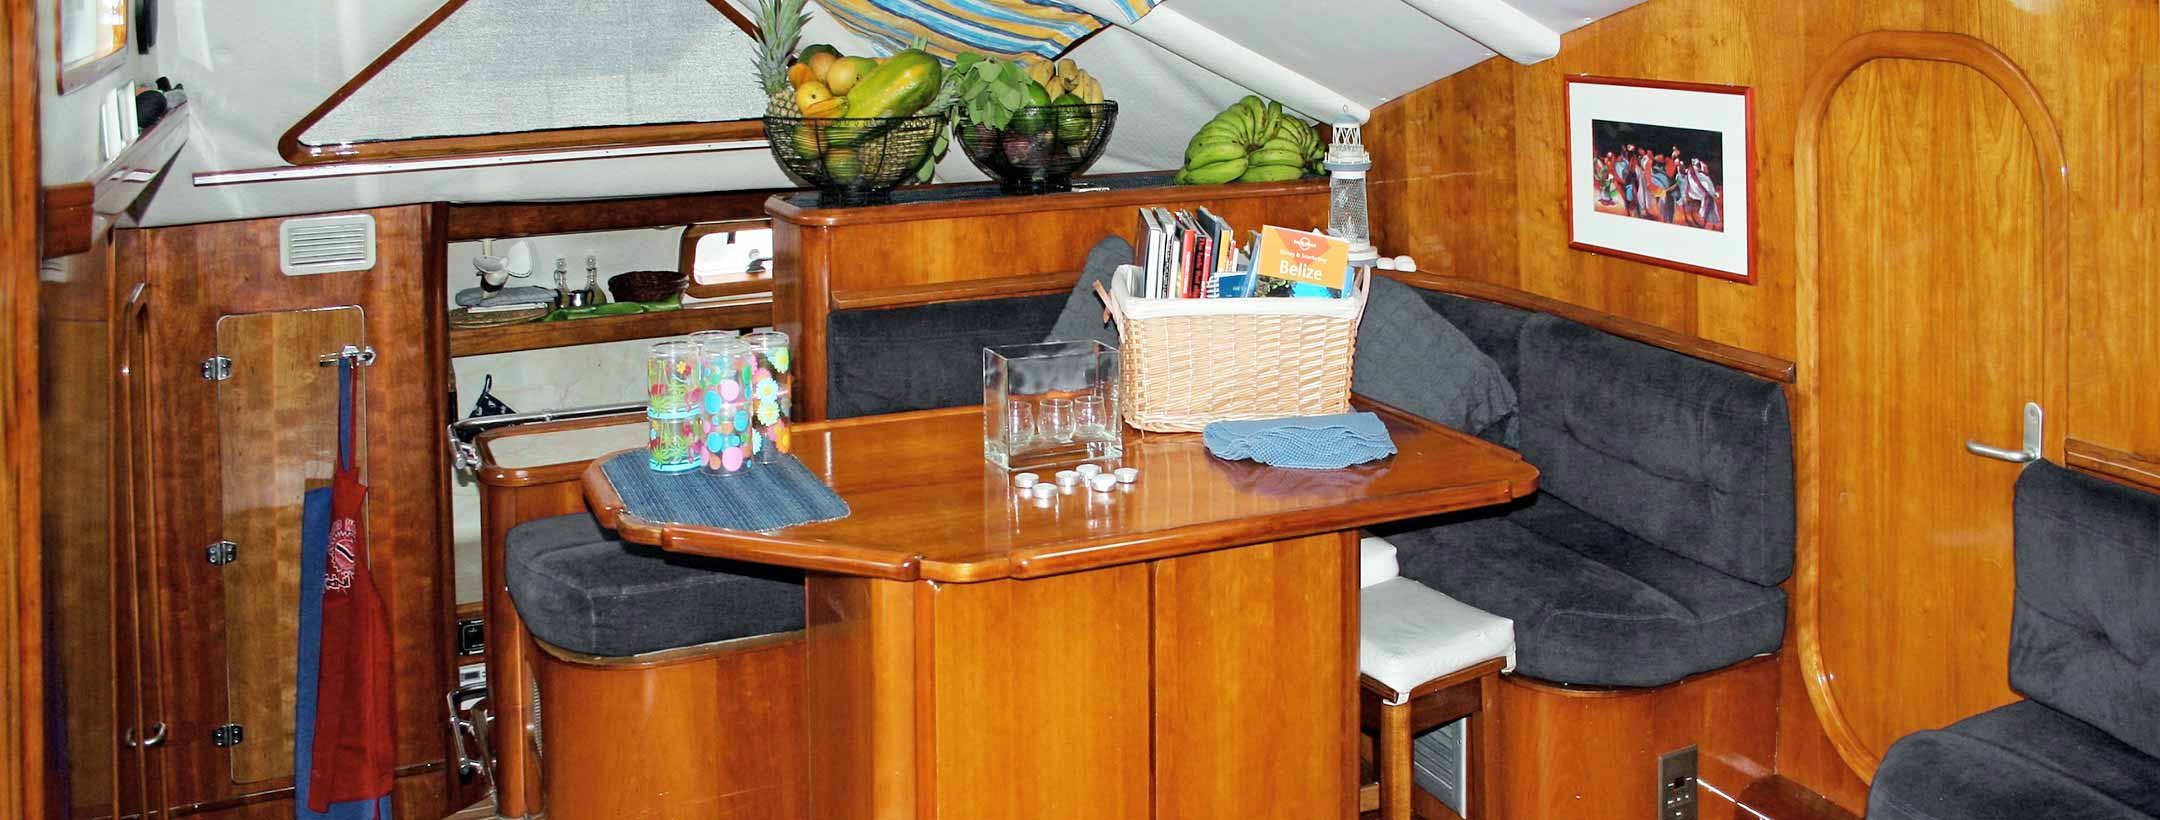 TradeWinds Privilege 51 Cruising Class Yacht indoor view